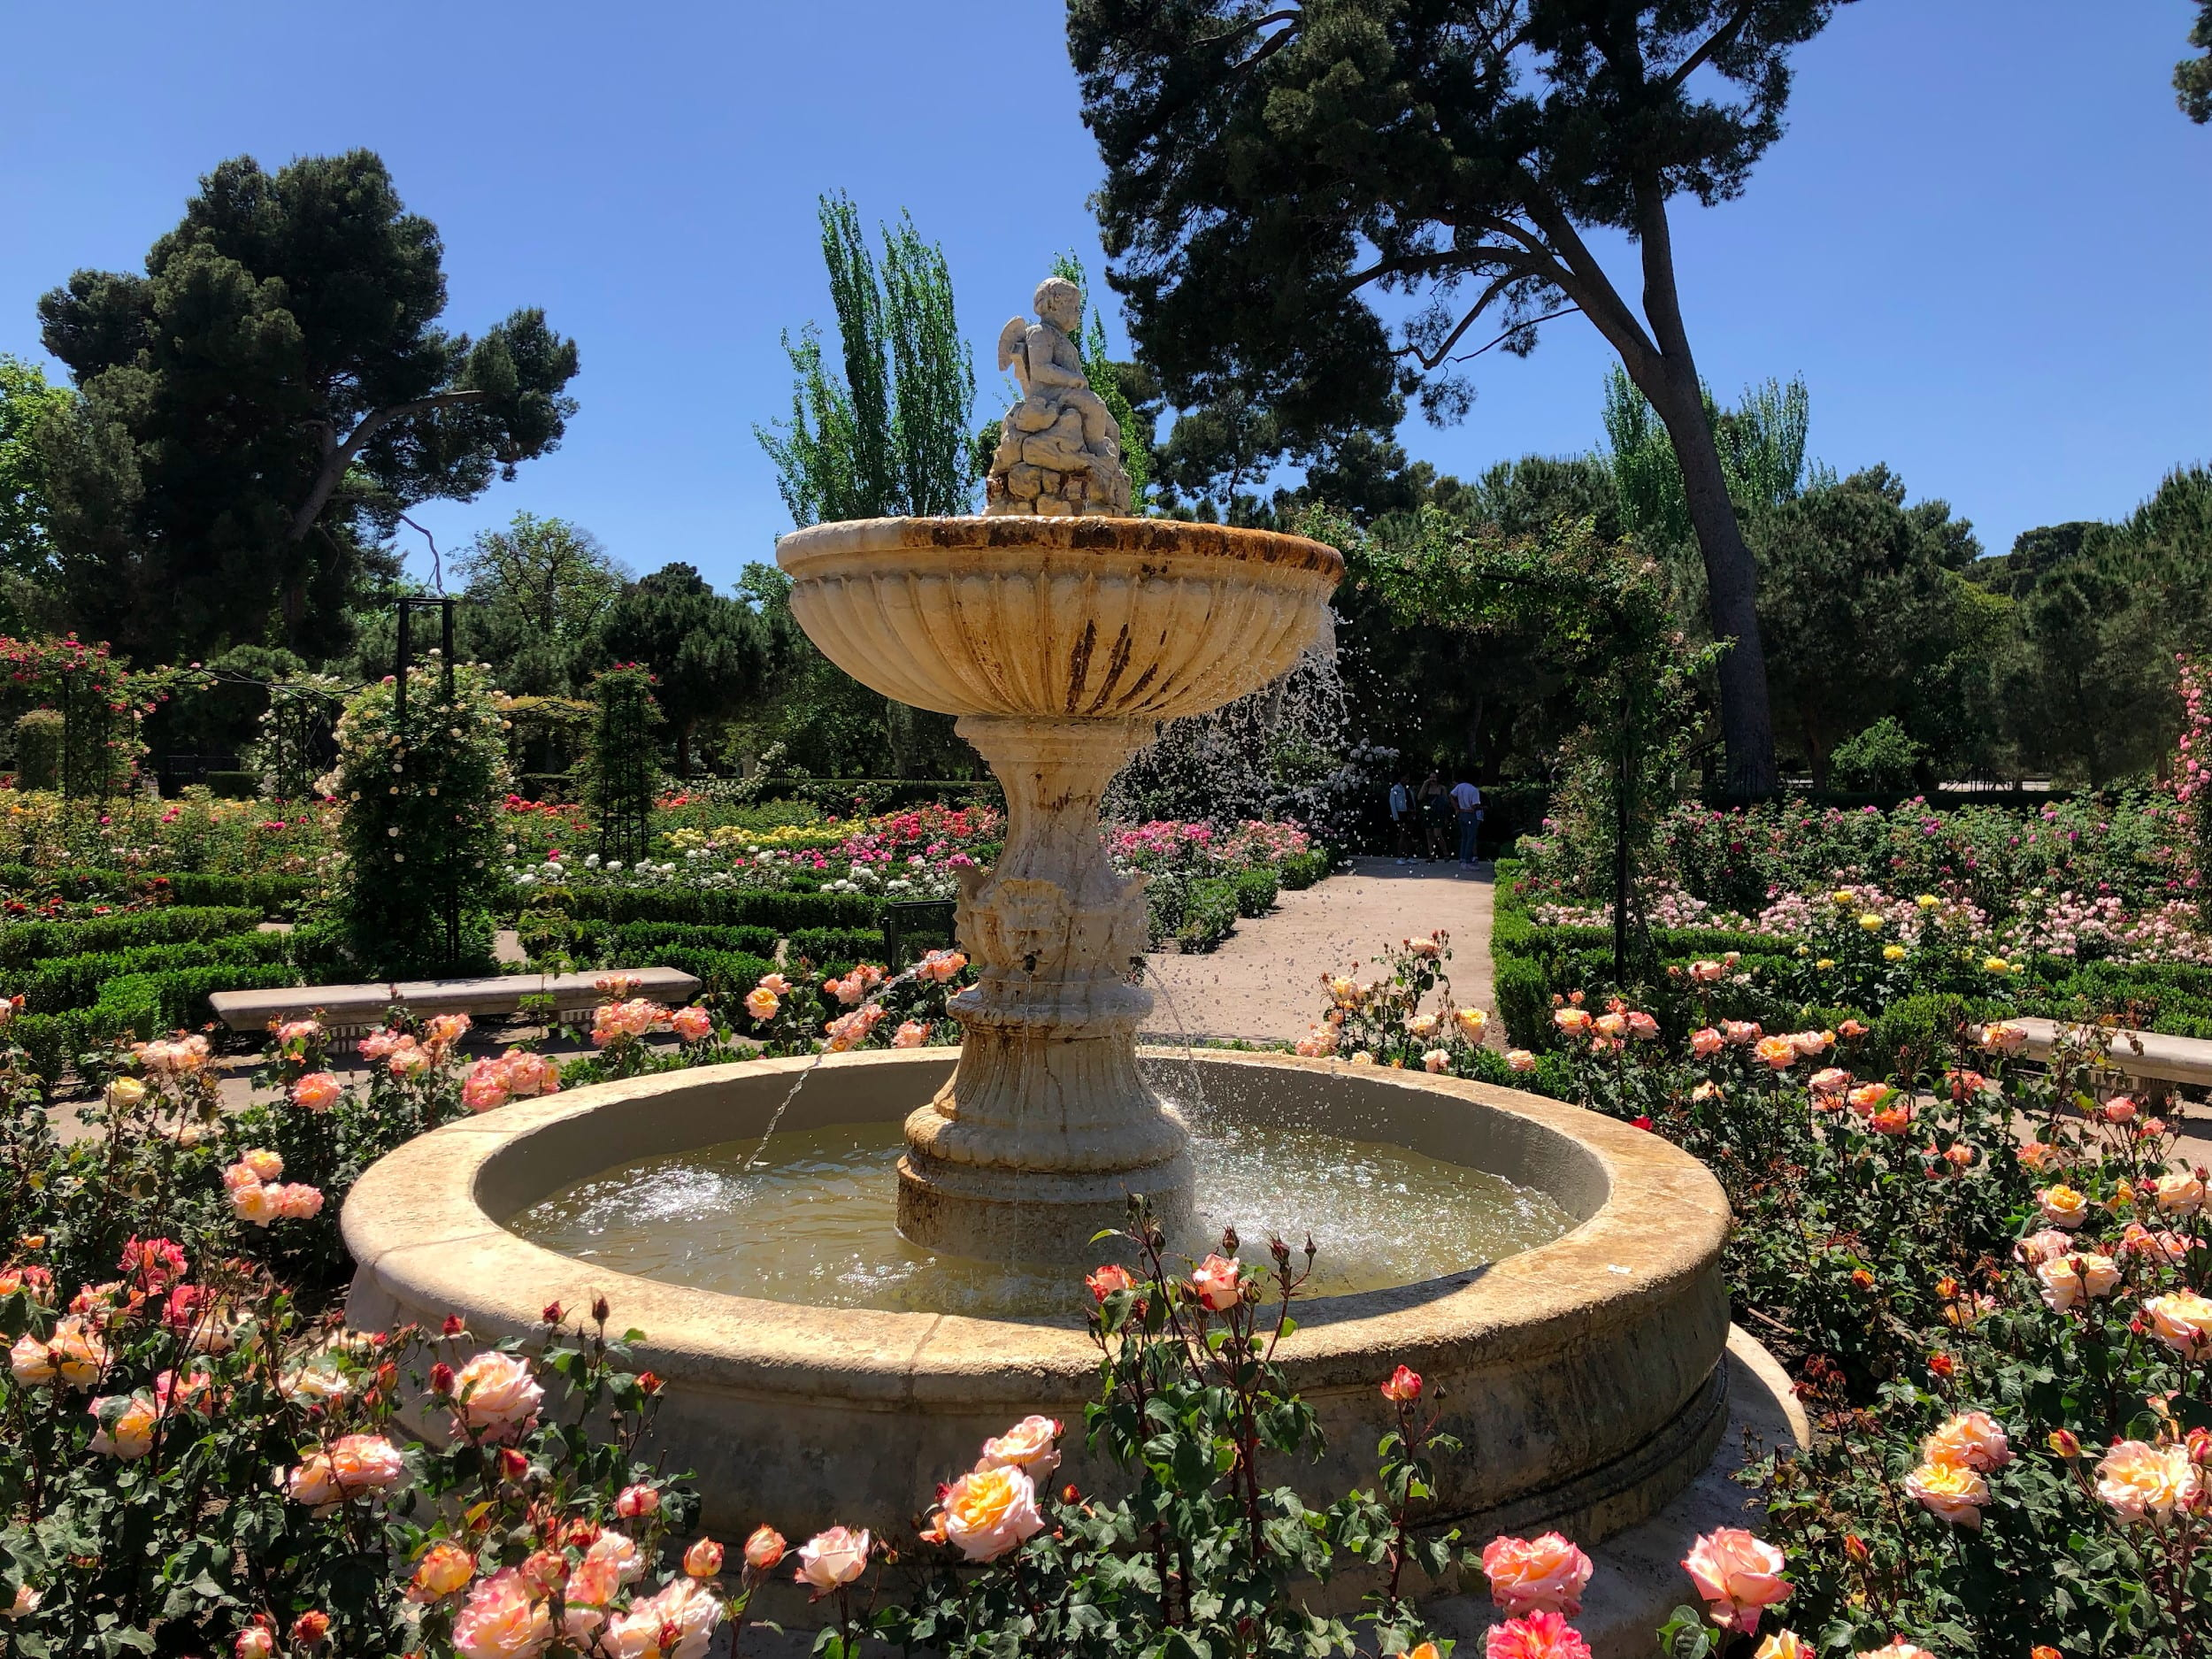 Water fountain made of beige material surrounded by pink roses, green shrubbery and blue sky in background